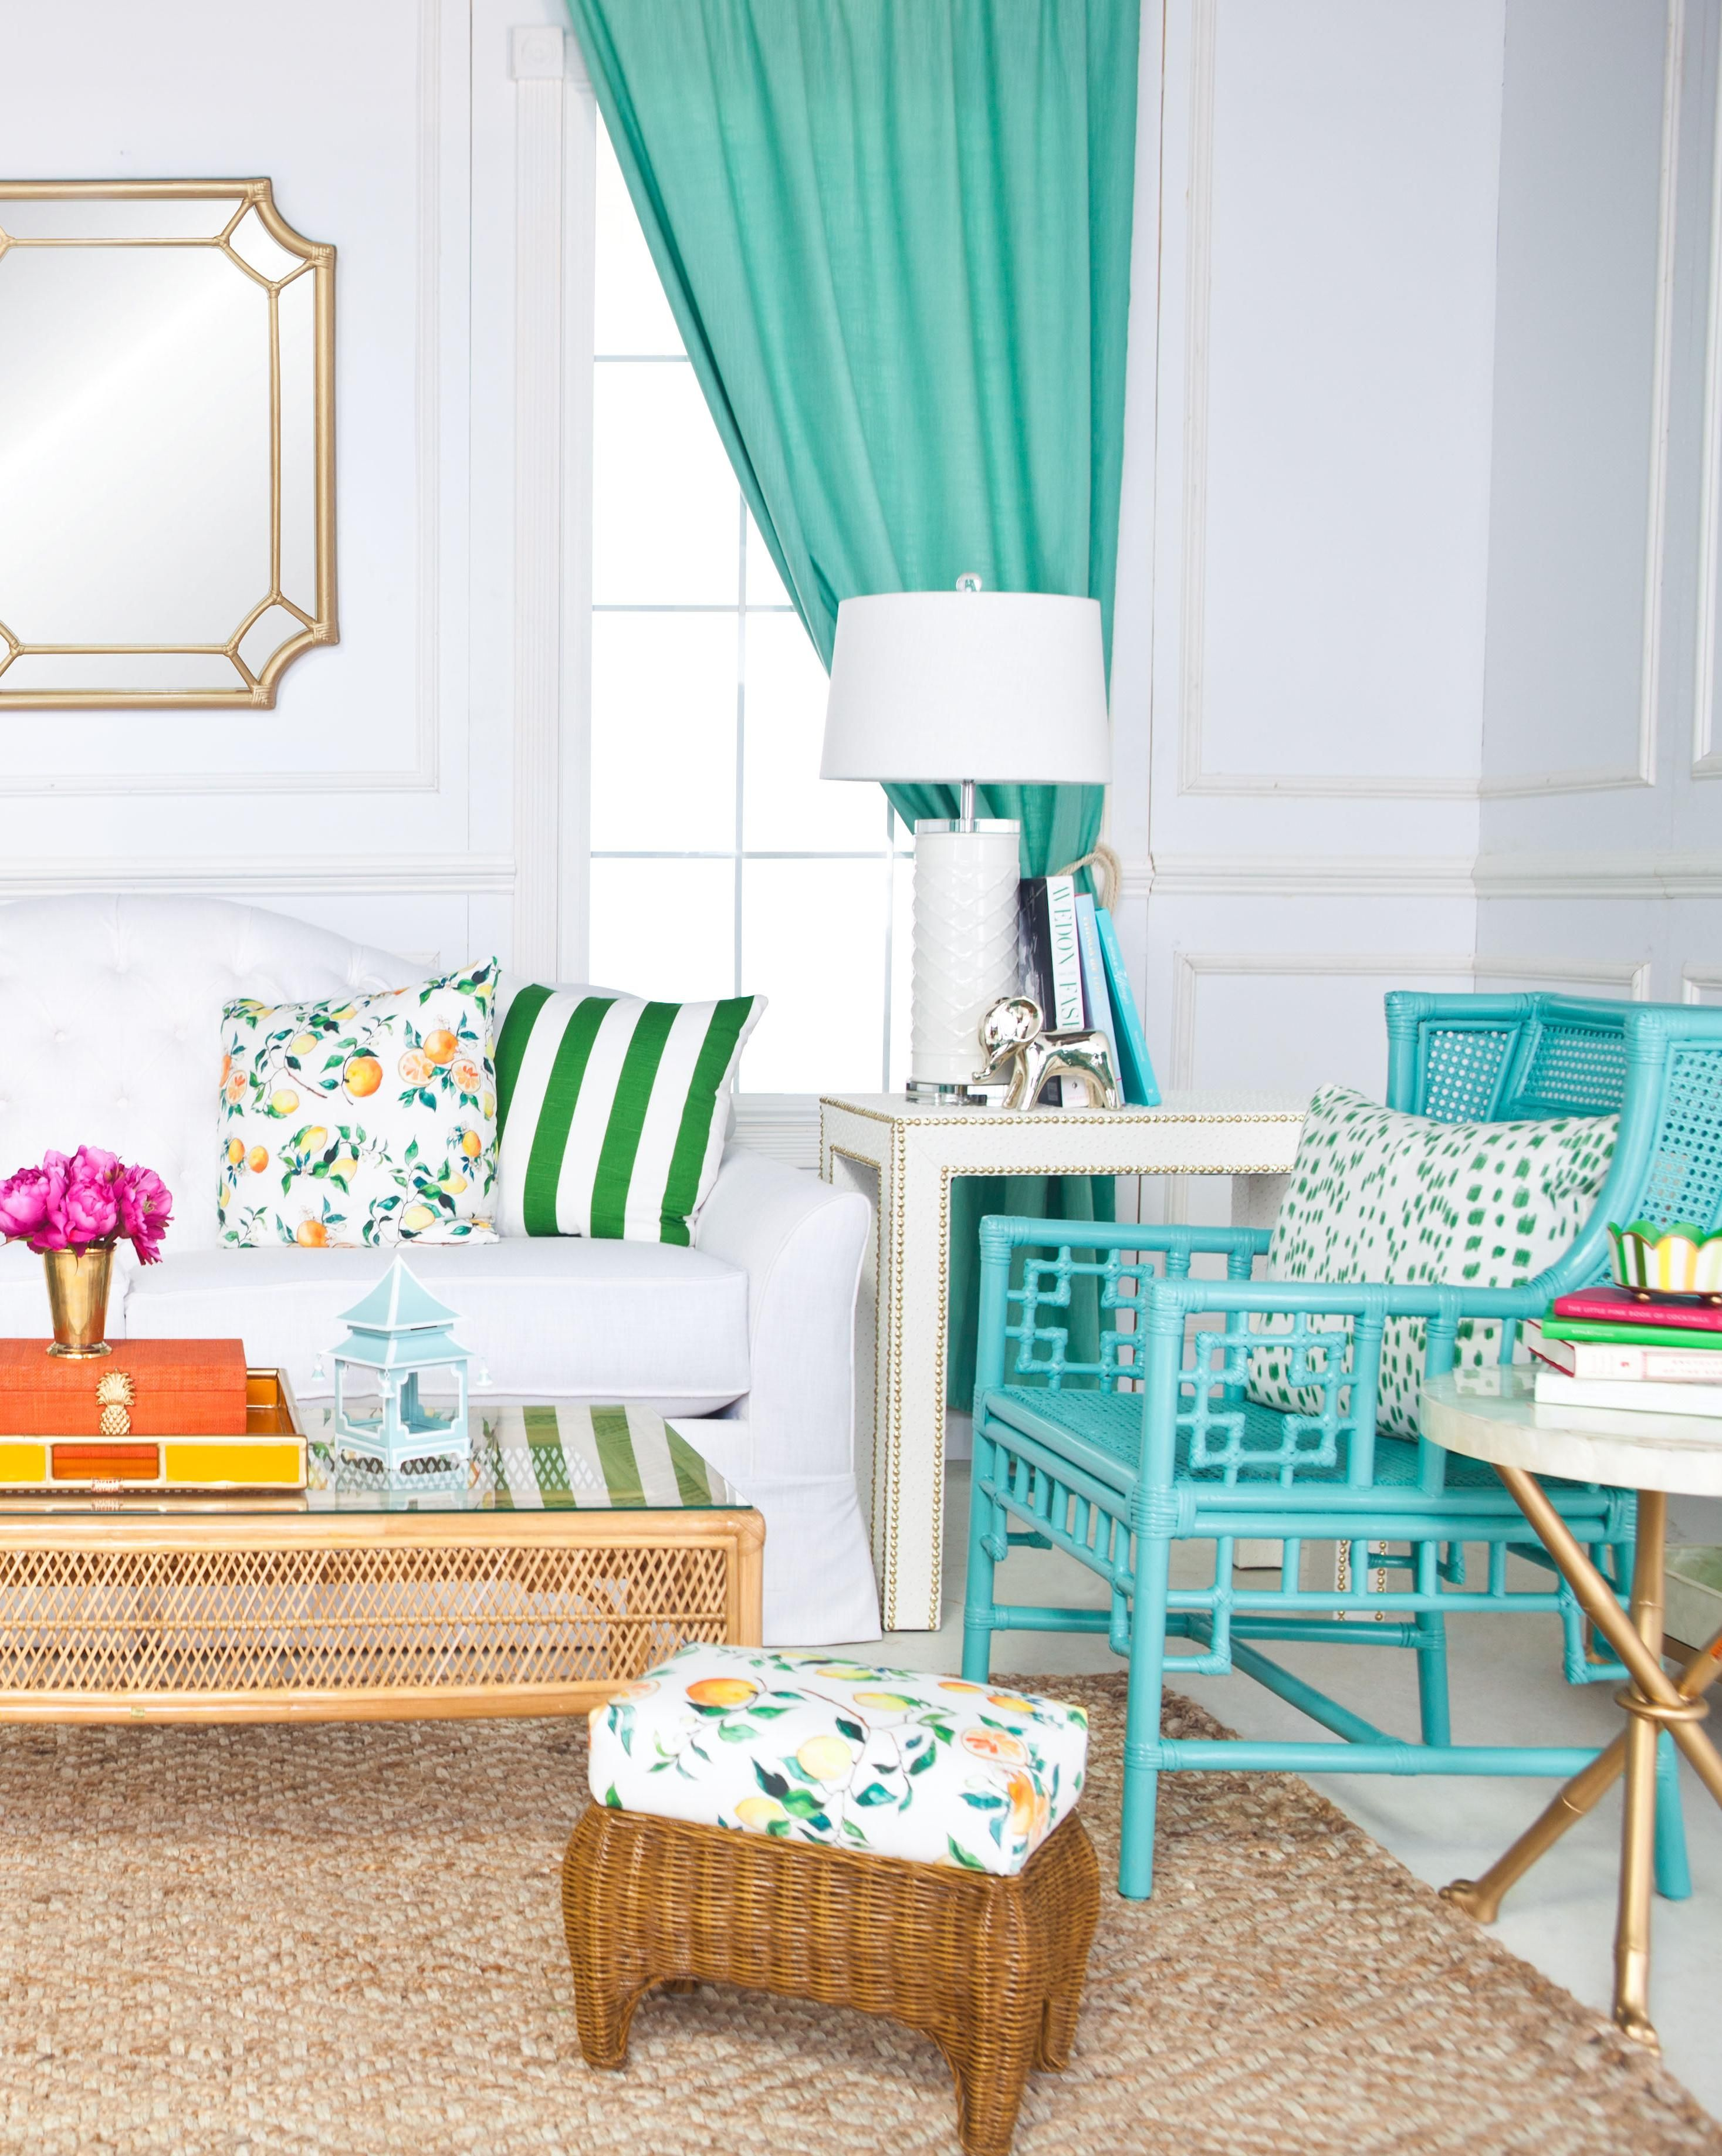 11 Living Room Decorating Ideas Every Homeowner Should Know Living Room Decor Home Decor Coffee Table Centerpieces